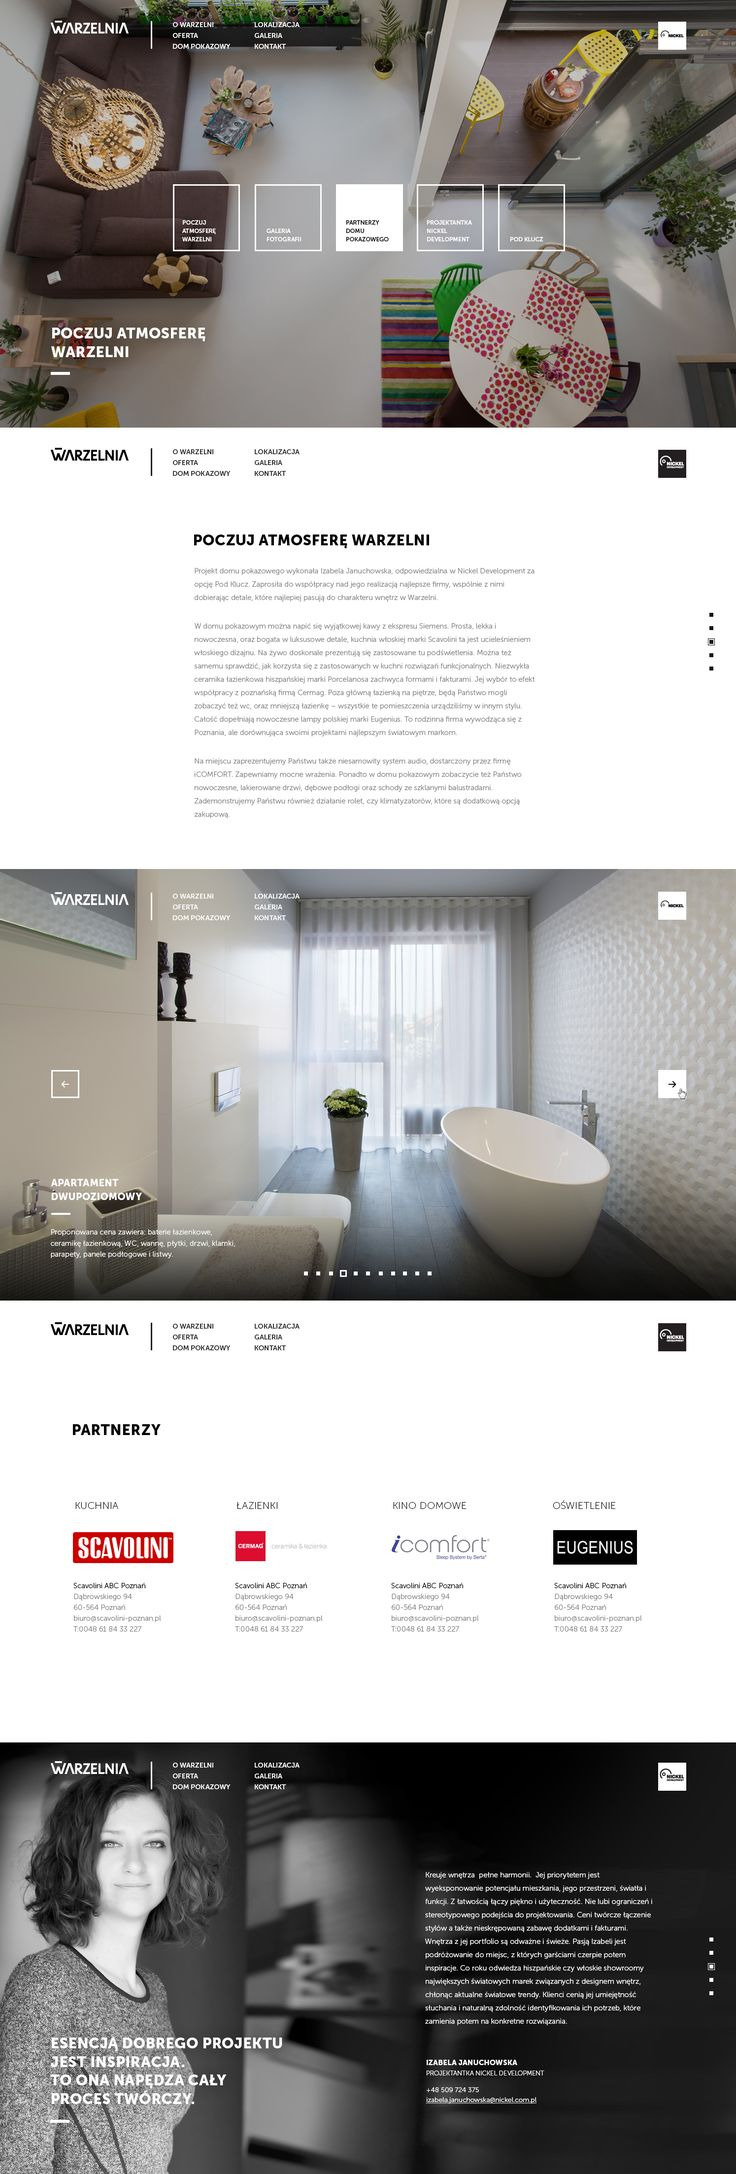 Luxurious apartments in the most desirable location in Poznan. Apartments for sa…